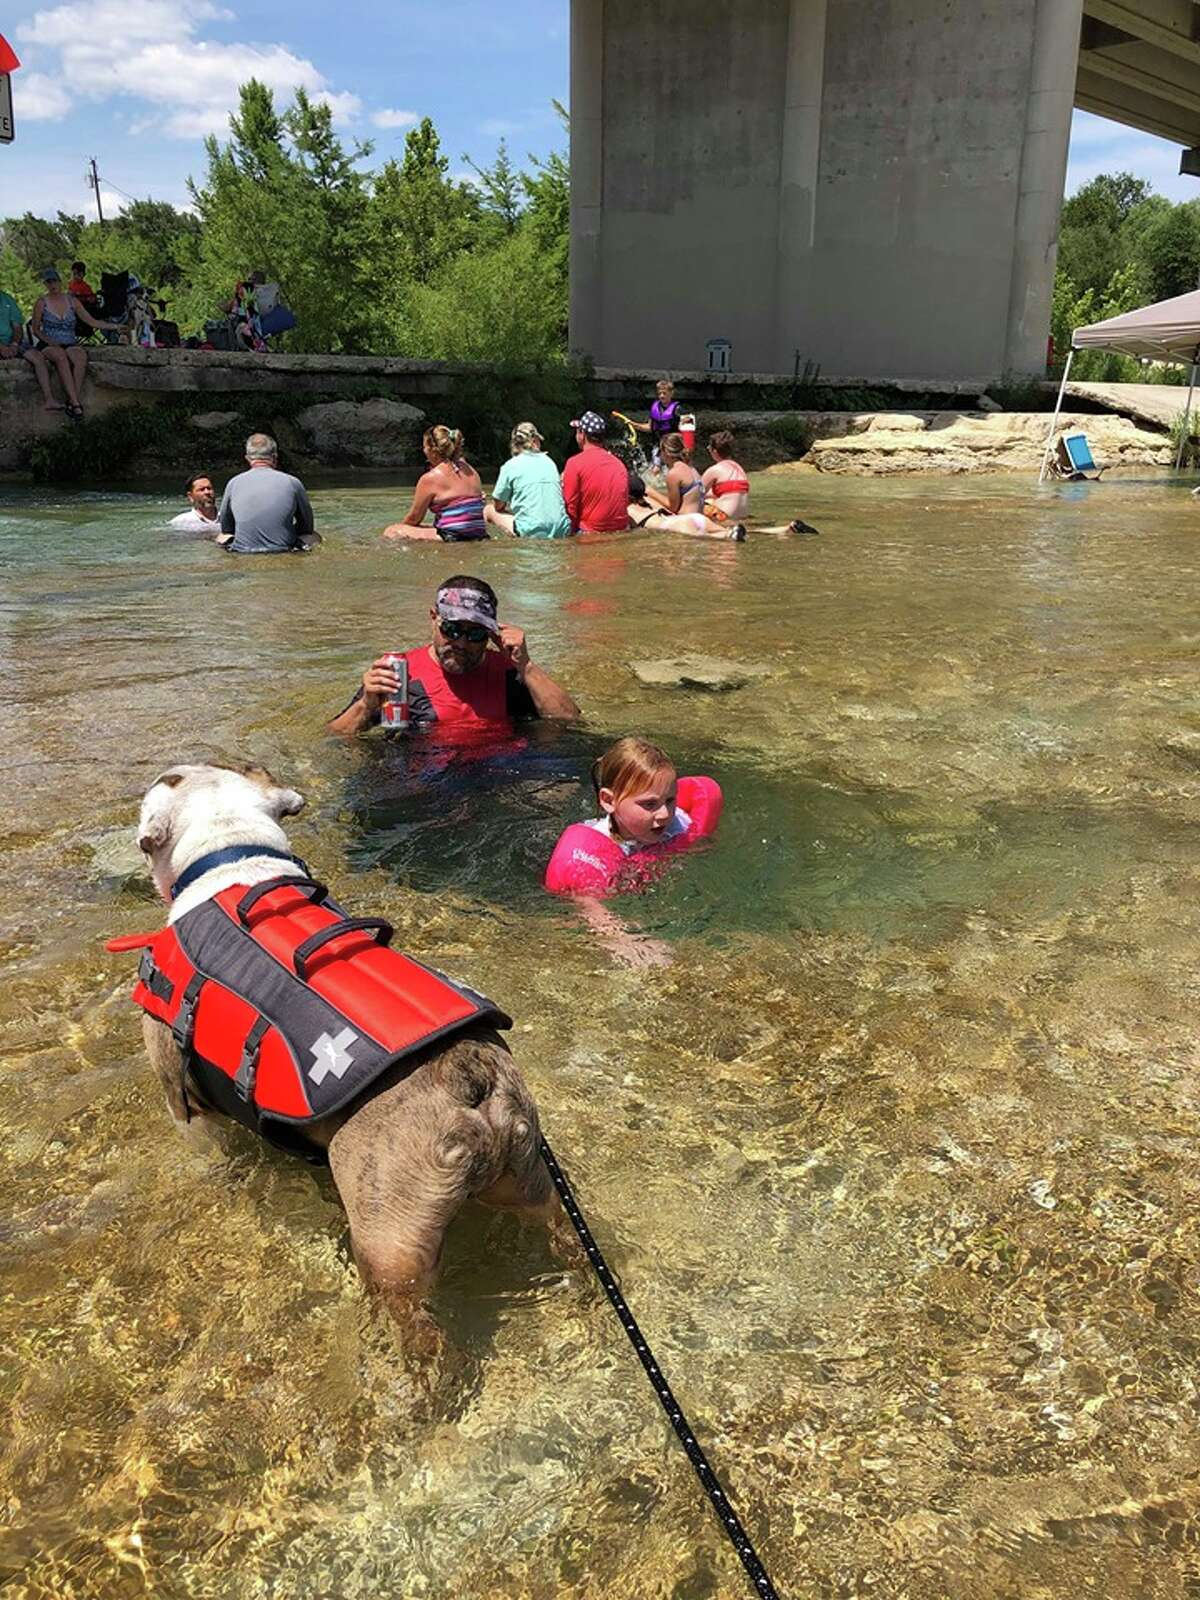 Monica Davila wanted to start a sweet and simple tradition when her Houston family and two others went floating on the Frio River near Uvalde last weekend.